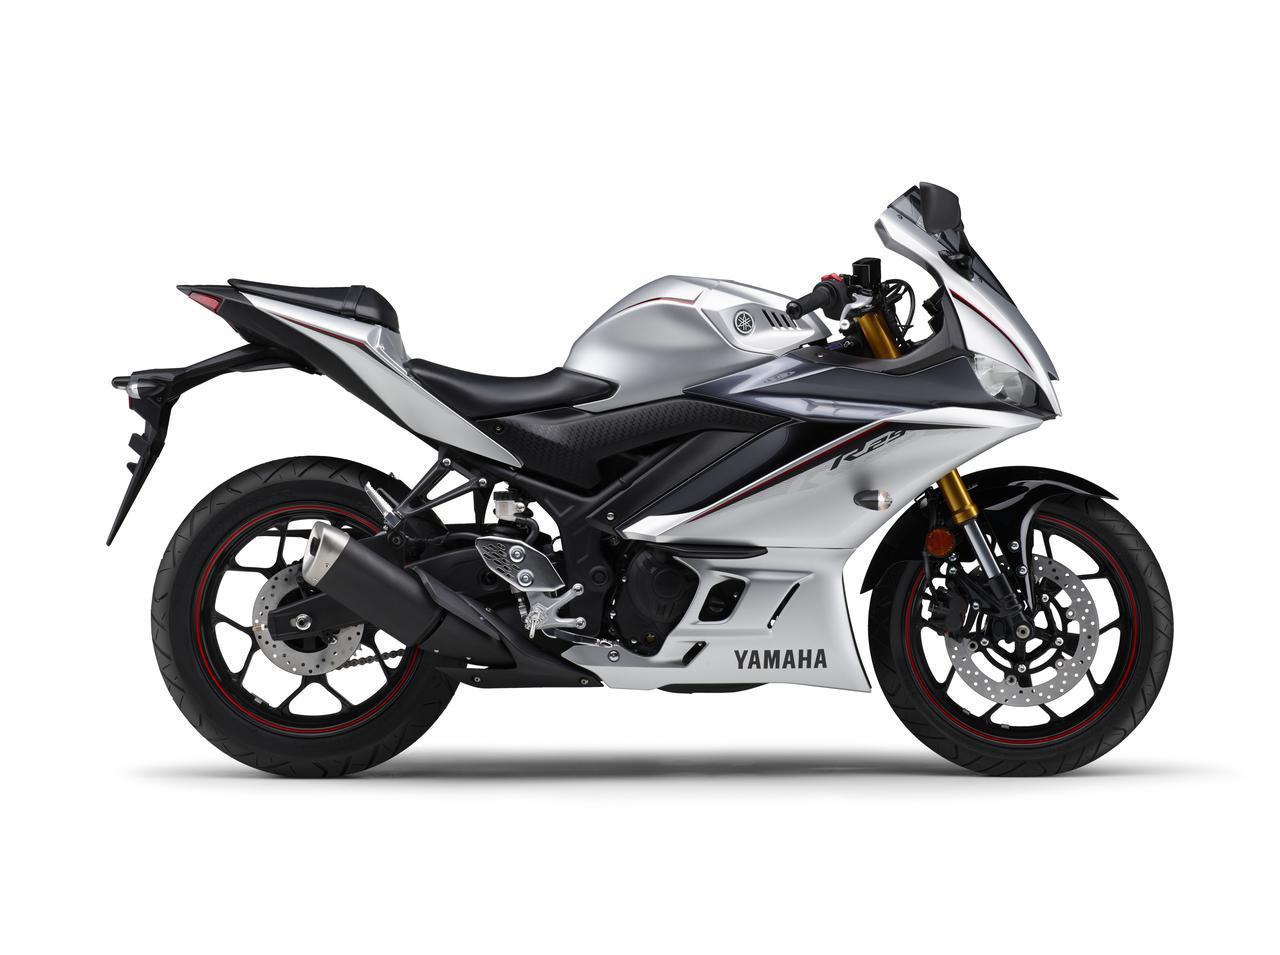 Images : 11番目の画像 - ヤマハ YZF-R25の写真をまとめて見る! - LAWRENCE - Motorcycle x Cars + α = Your Life.